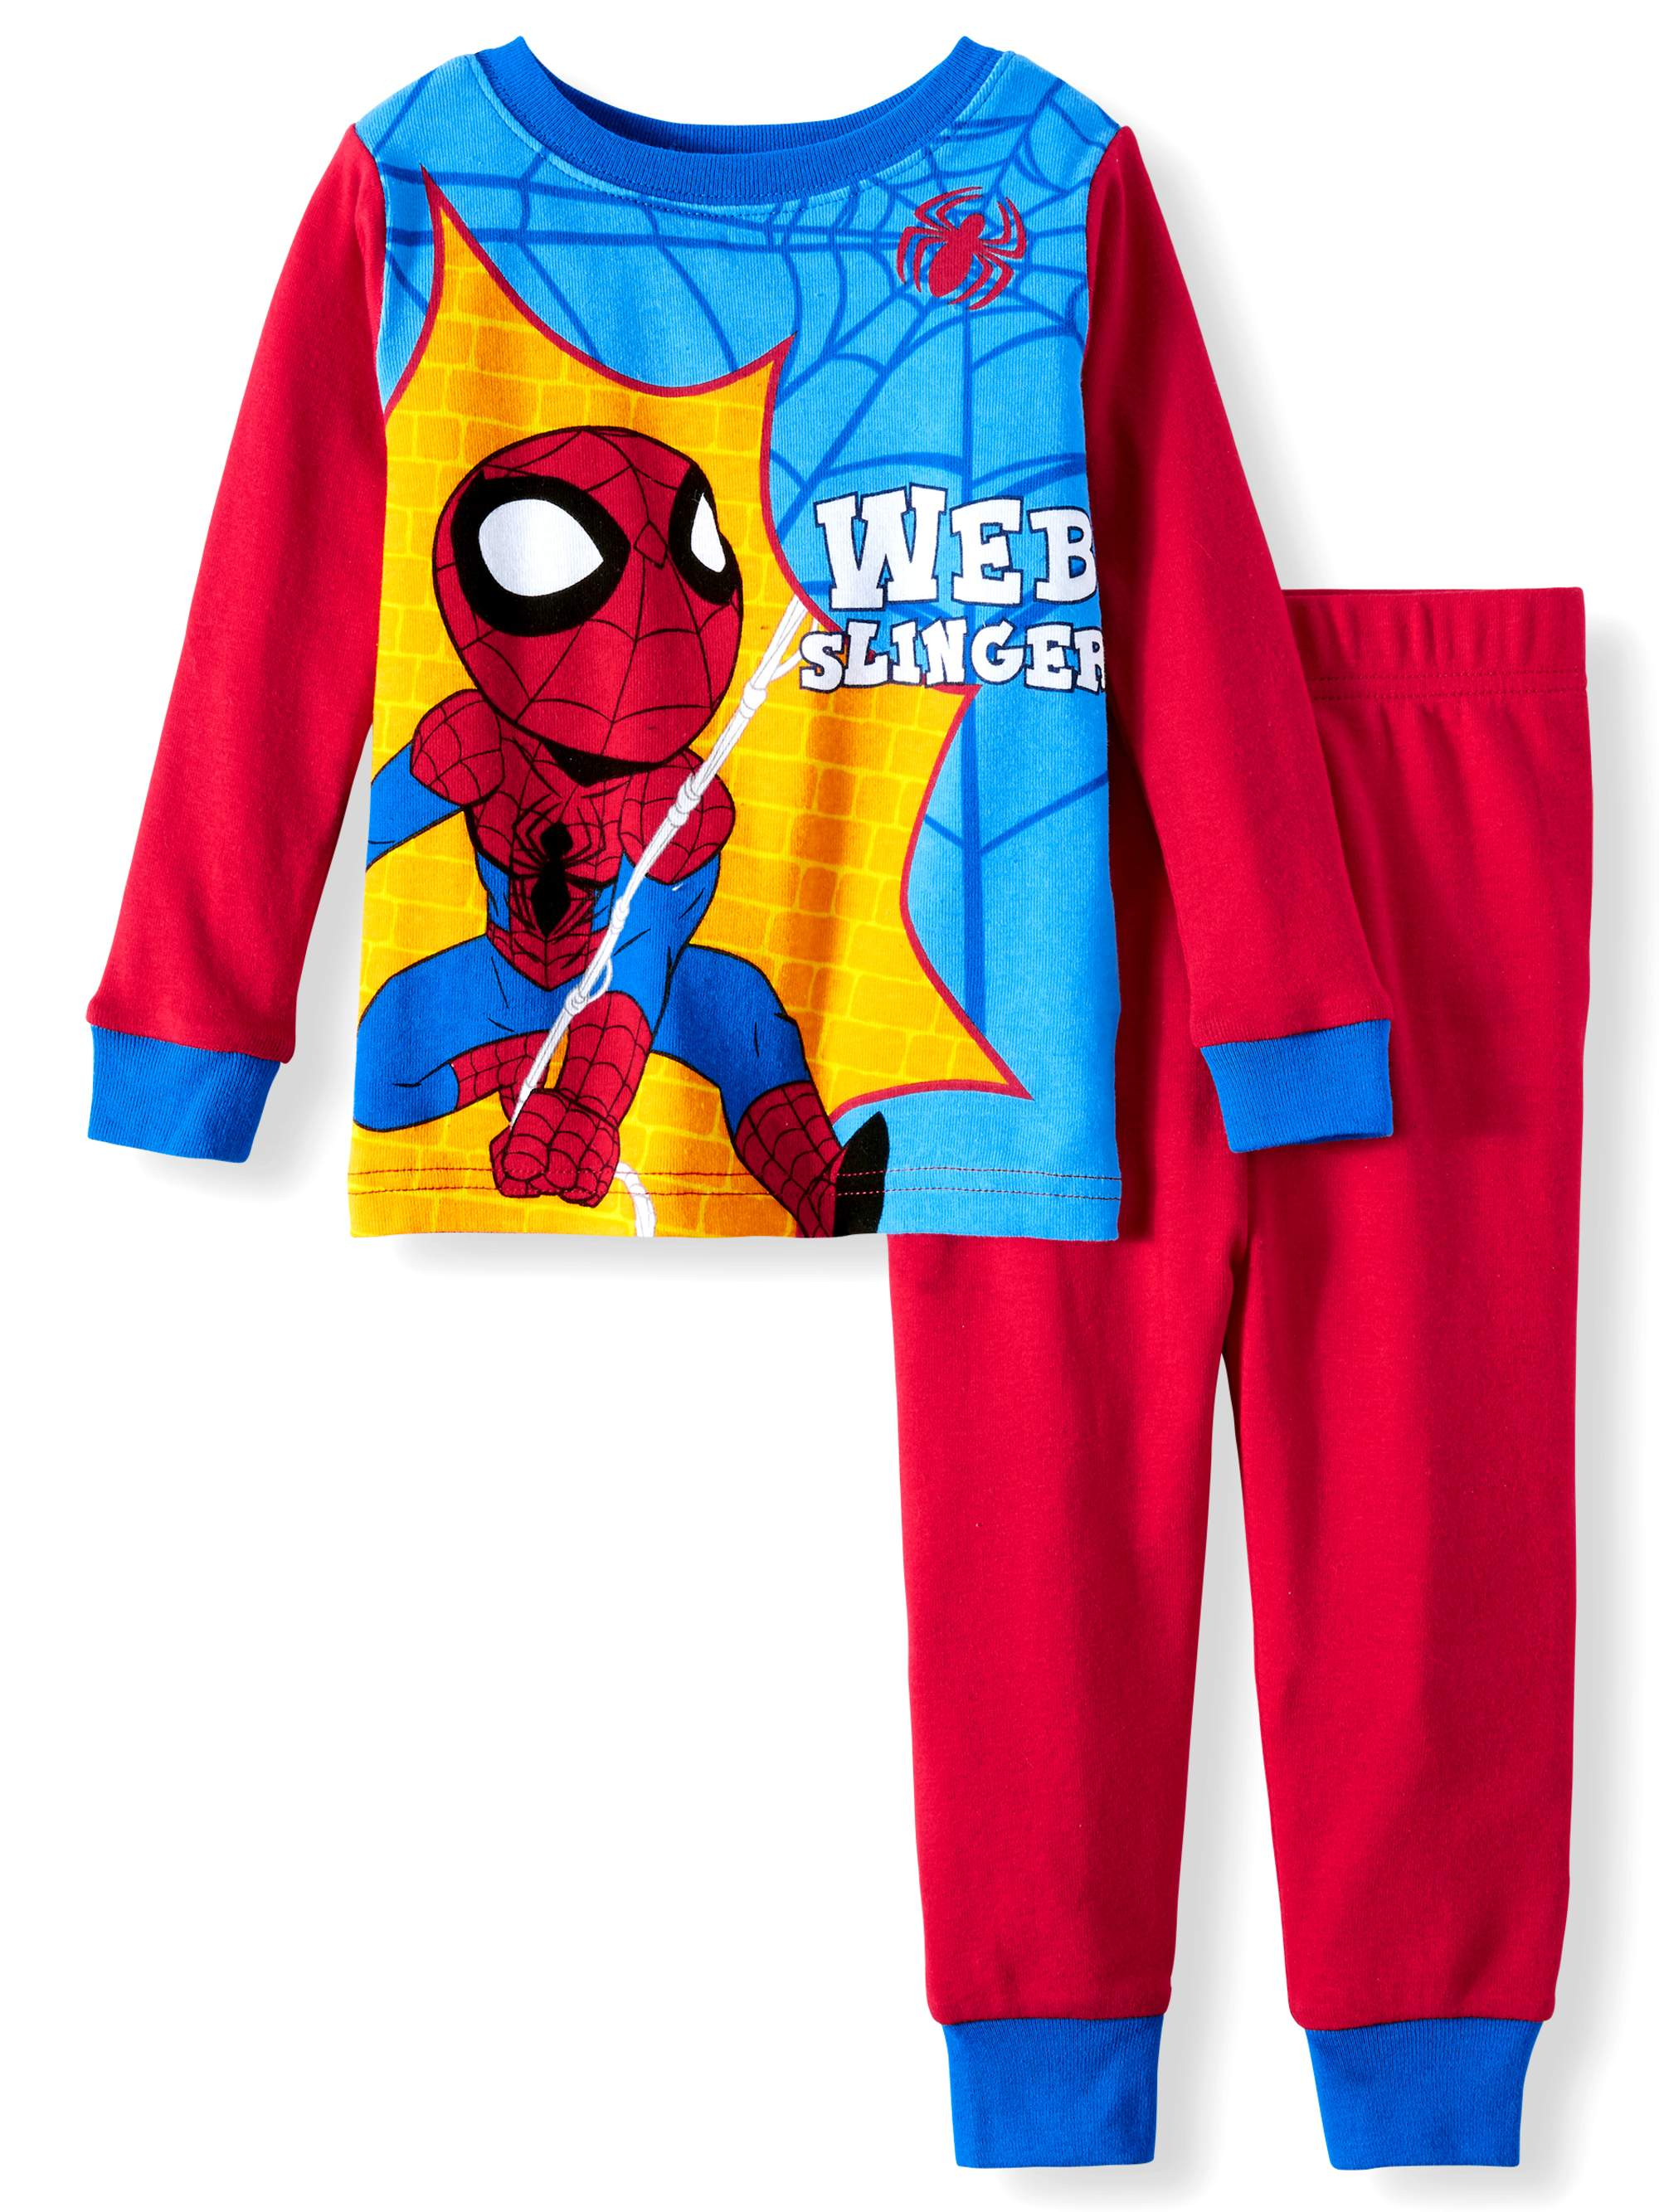 Spiderman Pajamas, 2pc Set (Toddler Boys)